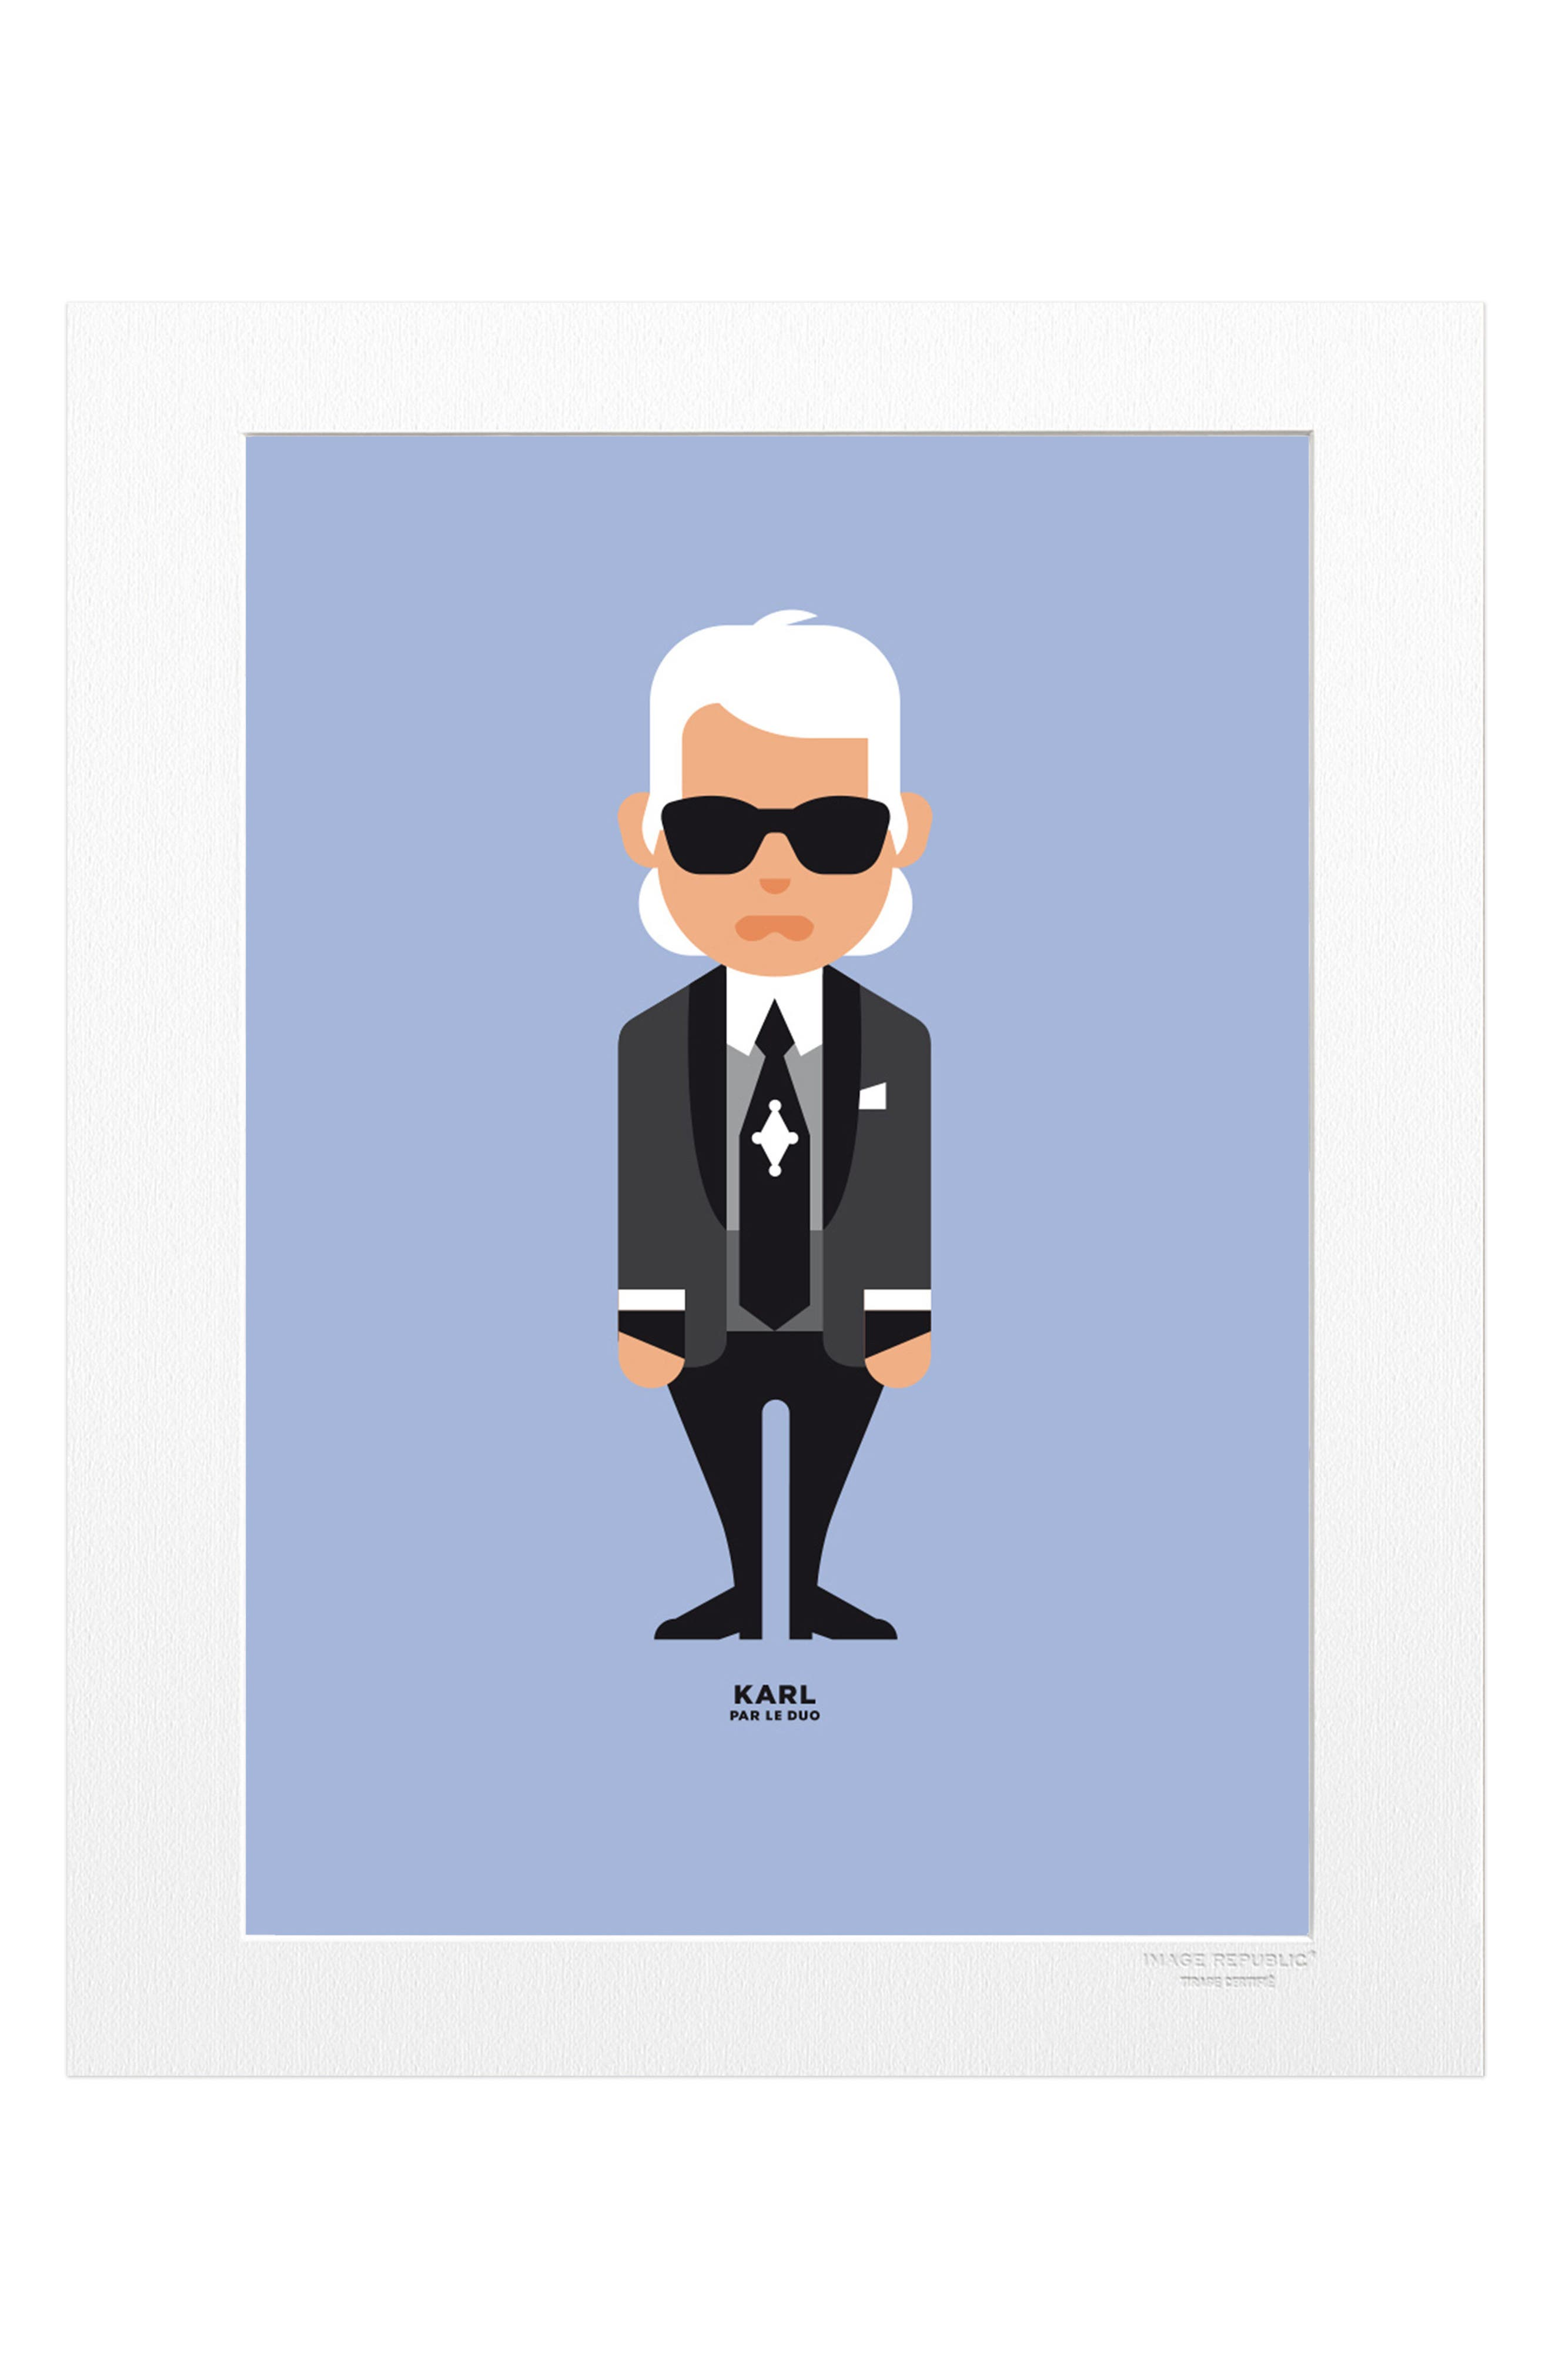 Main Image - Image Republic Le Duo Karl Lagerfeld Print